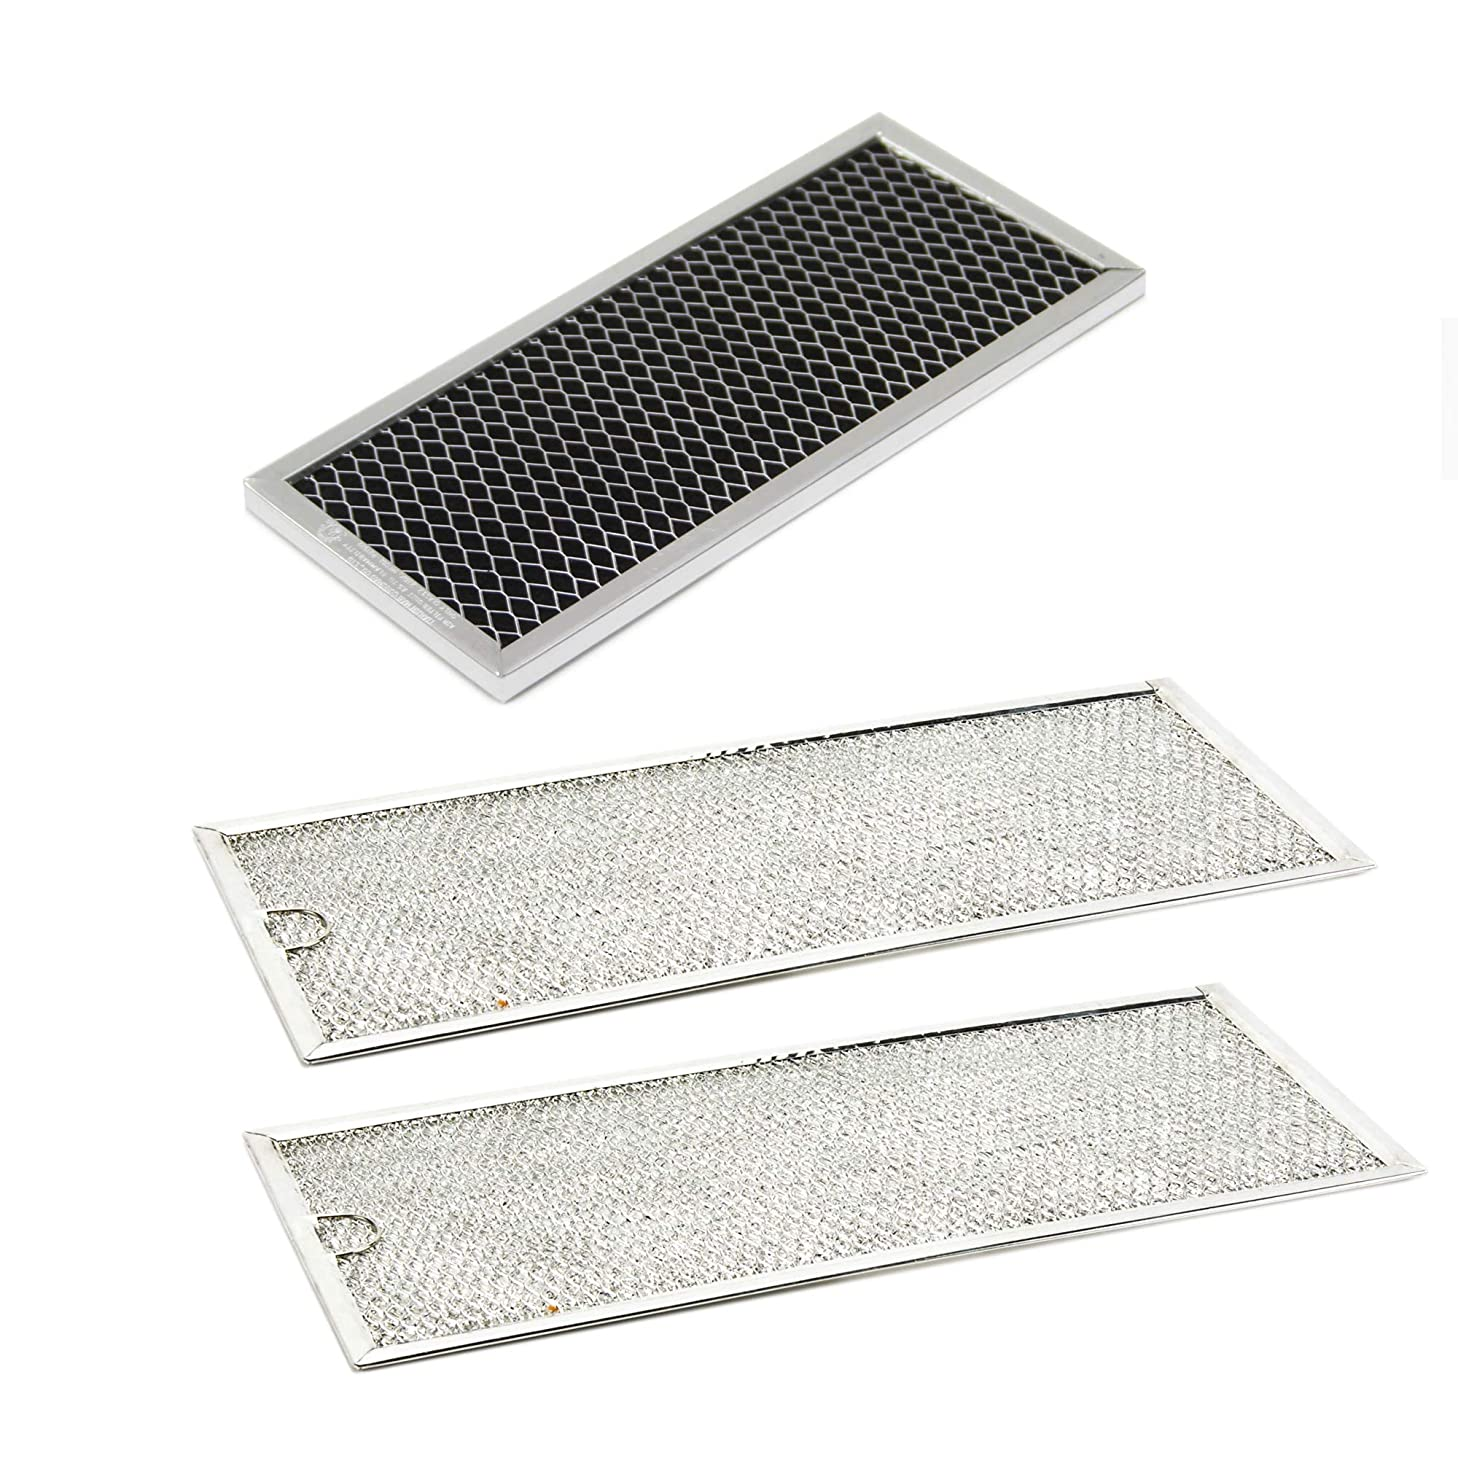 Kenmore DE63-00367H Microwave Charcoal Filter and DE63-00196A Grease Filter Bundle